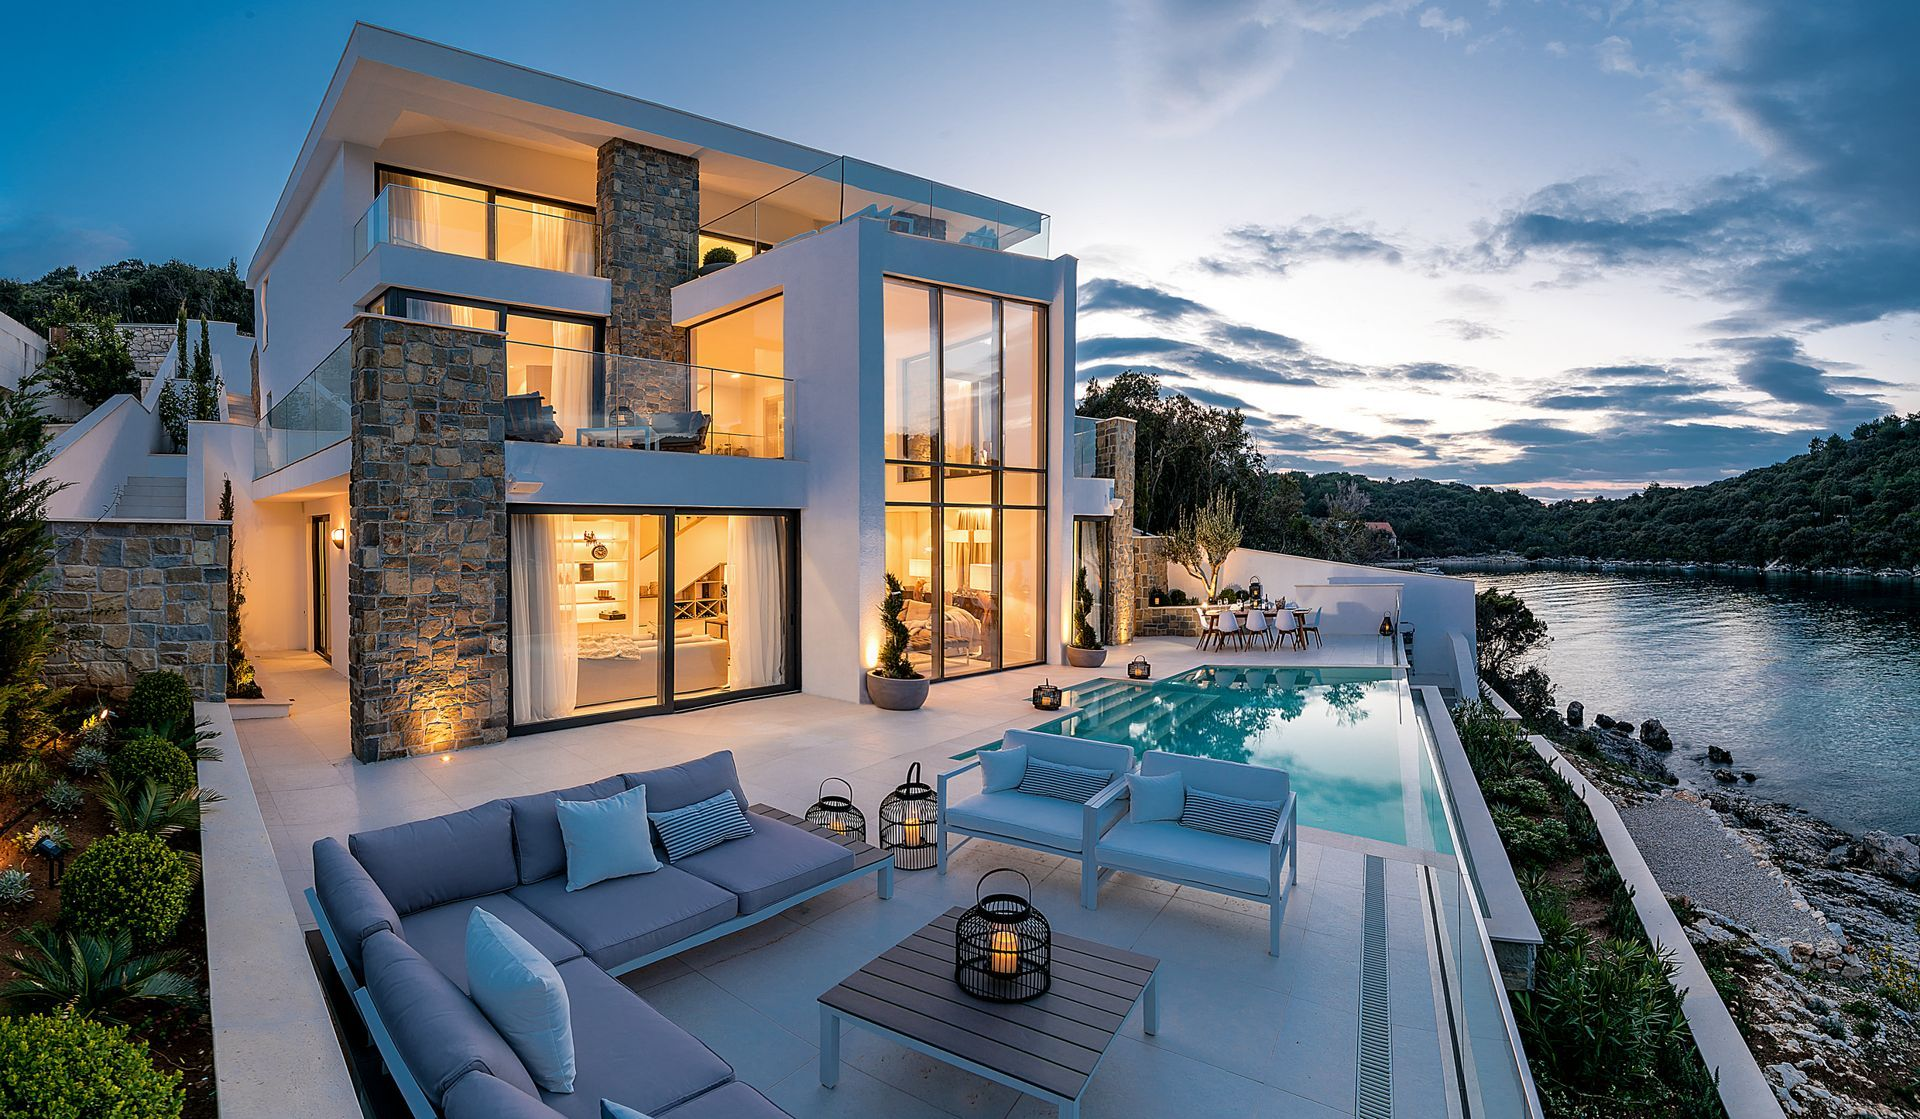 One of the most luxurious villa rentals on the Adriatic